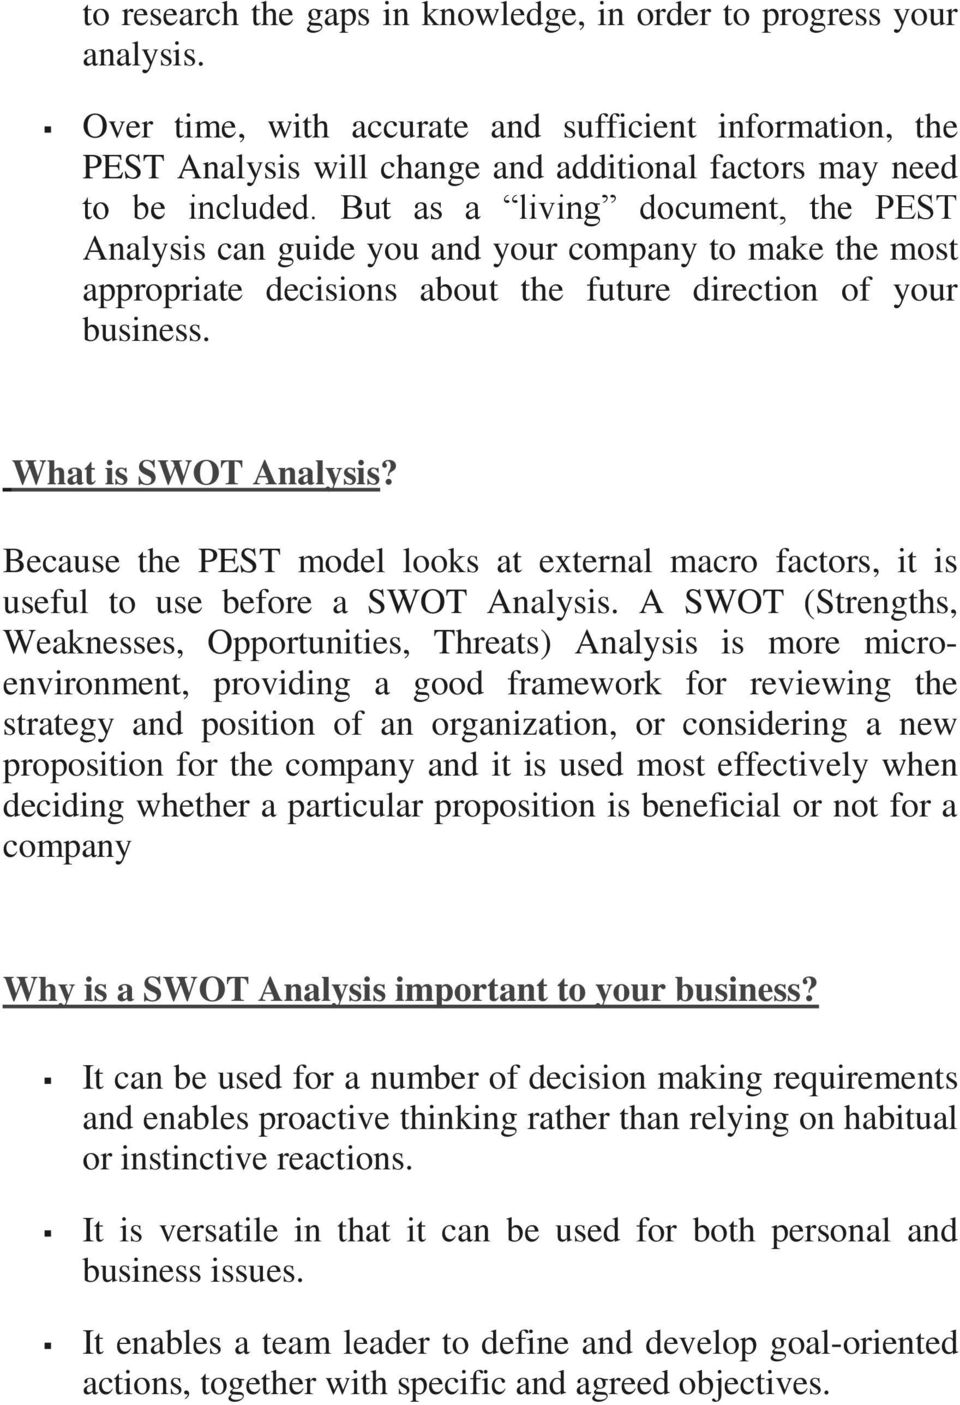 But as a living document, the PEST Analysis can guide you and your company to make the most appropriate decisions about the future direction of your business. What is SWOT Analysis?